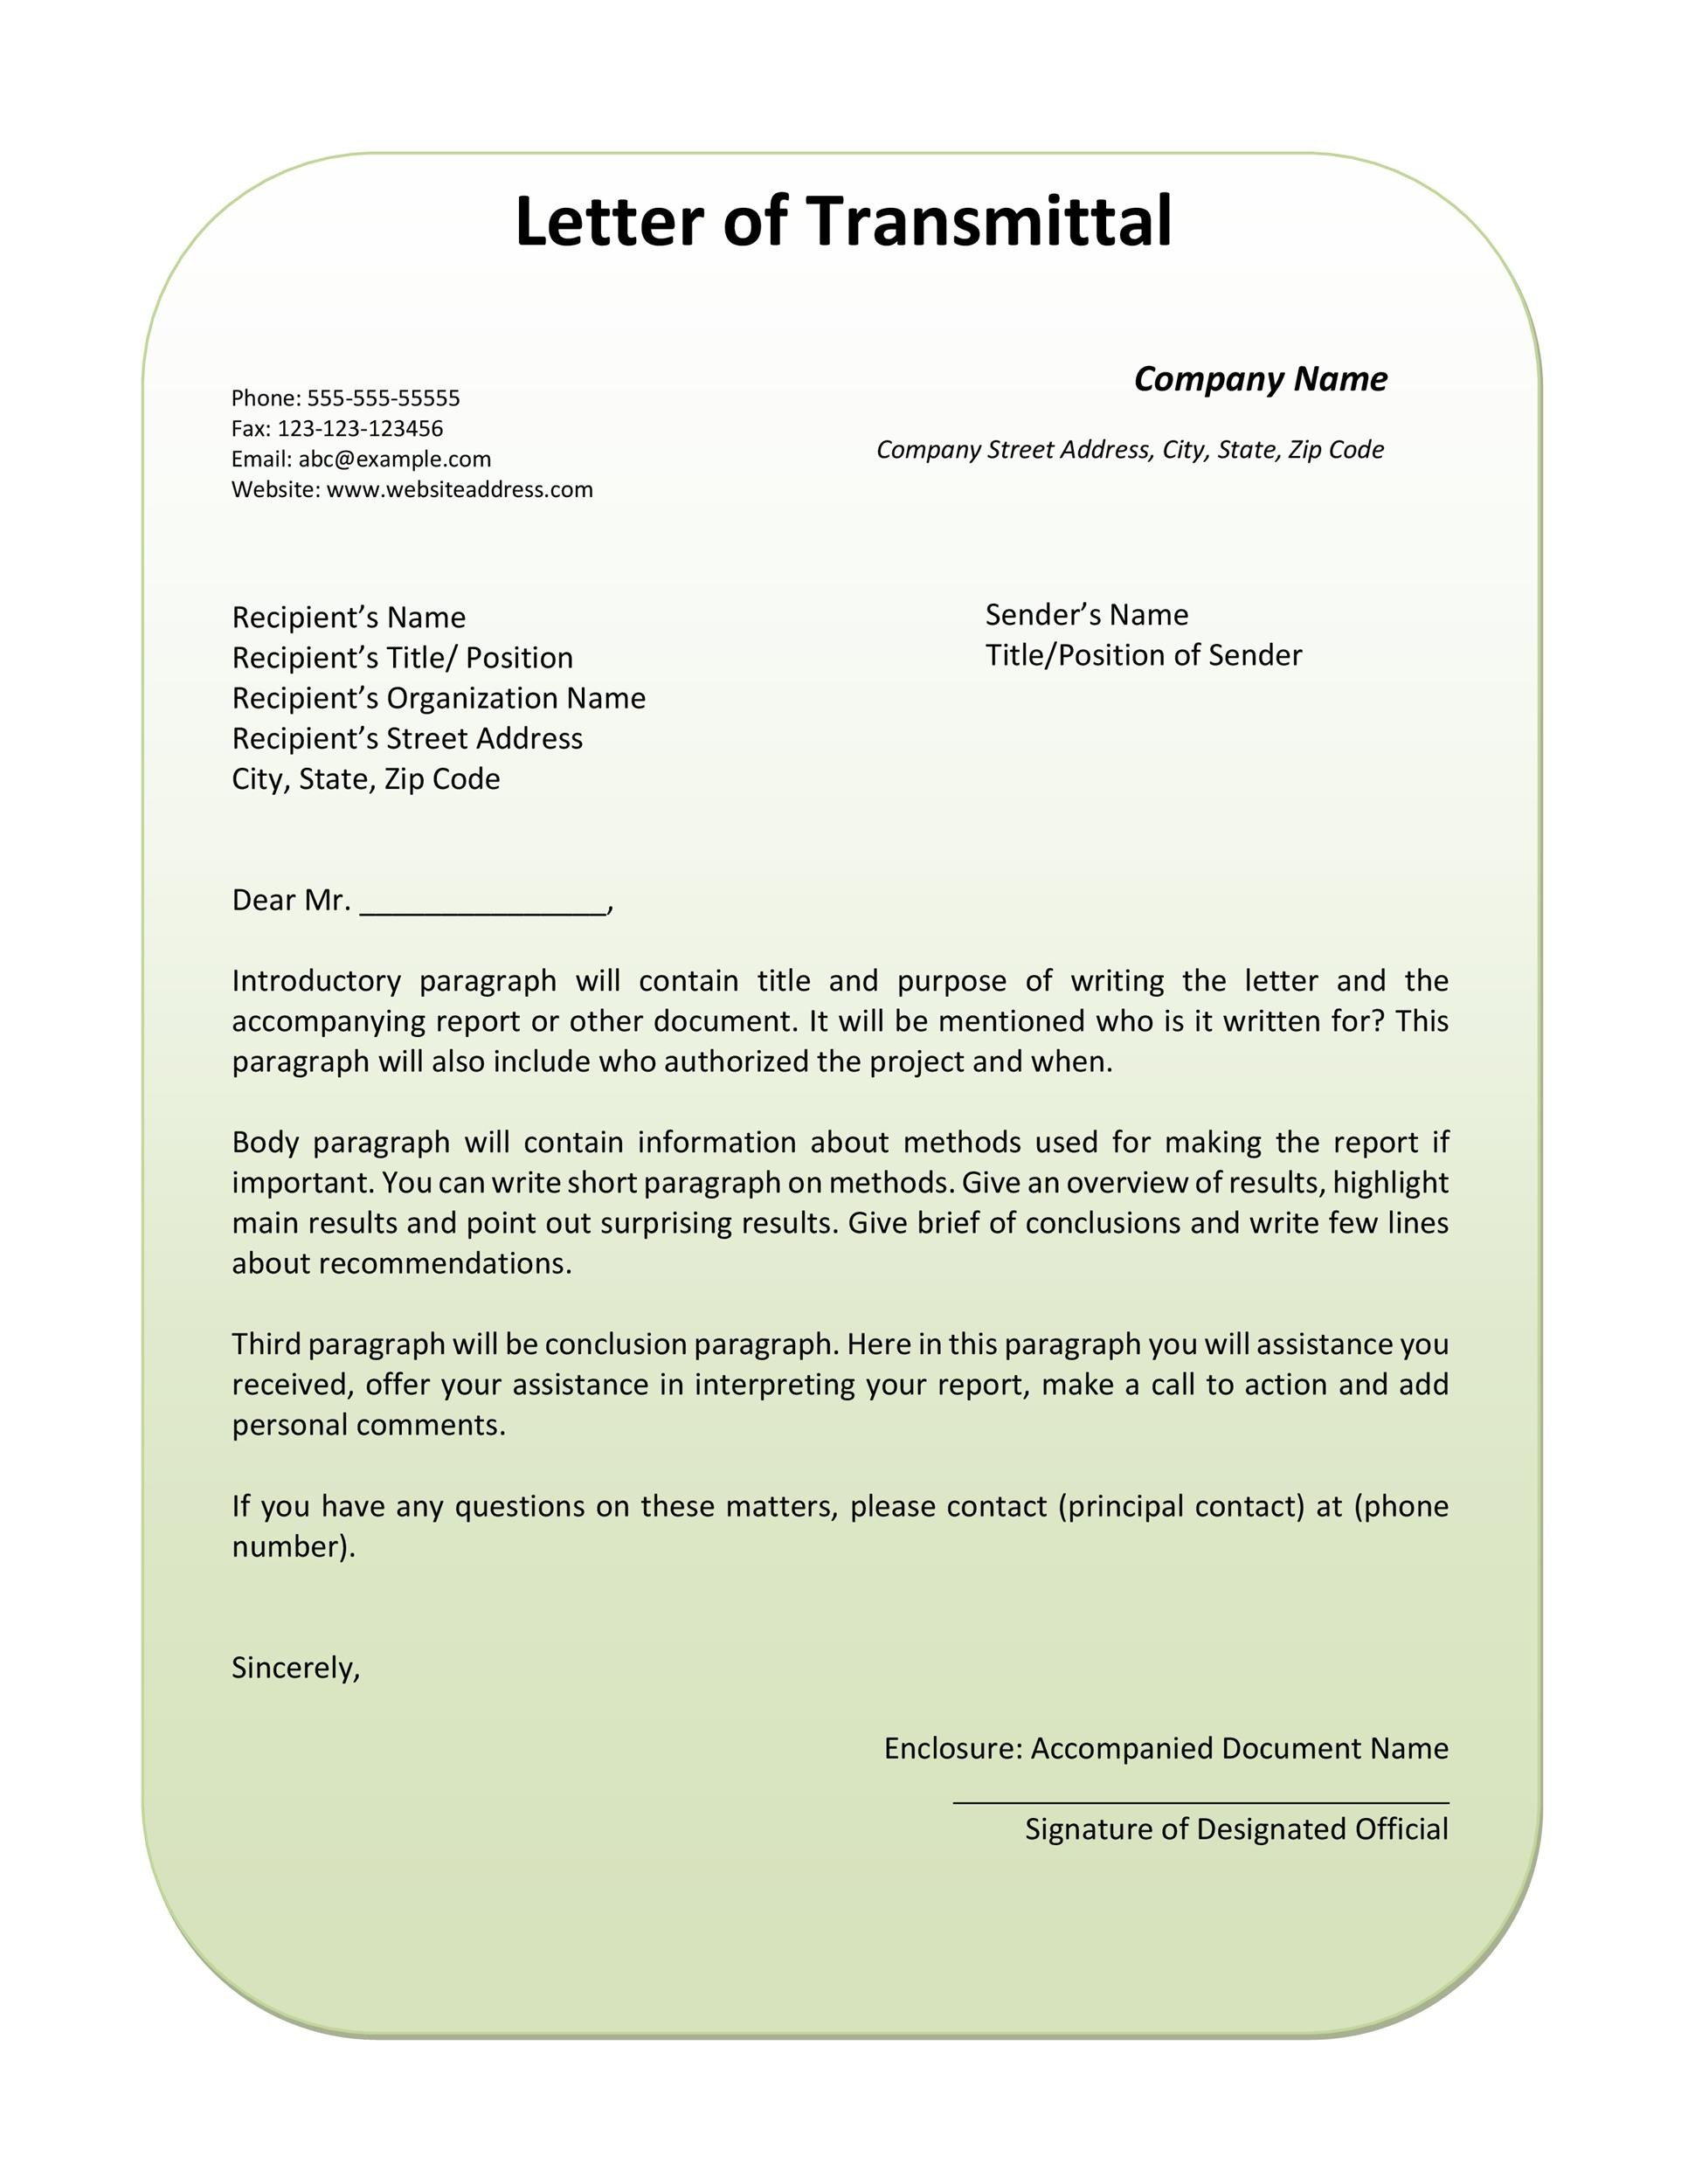 Letter of transmittal format etamemibawa letter of transmittal format spiritdancerdesigns Image collections